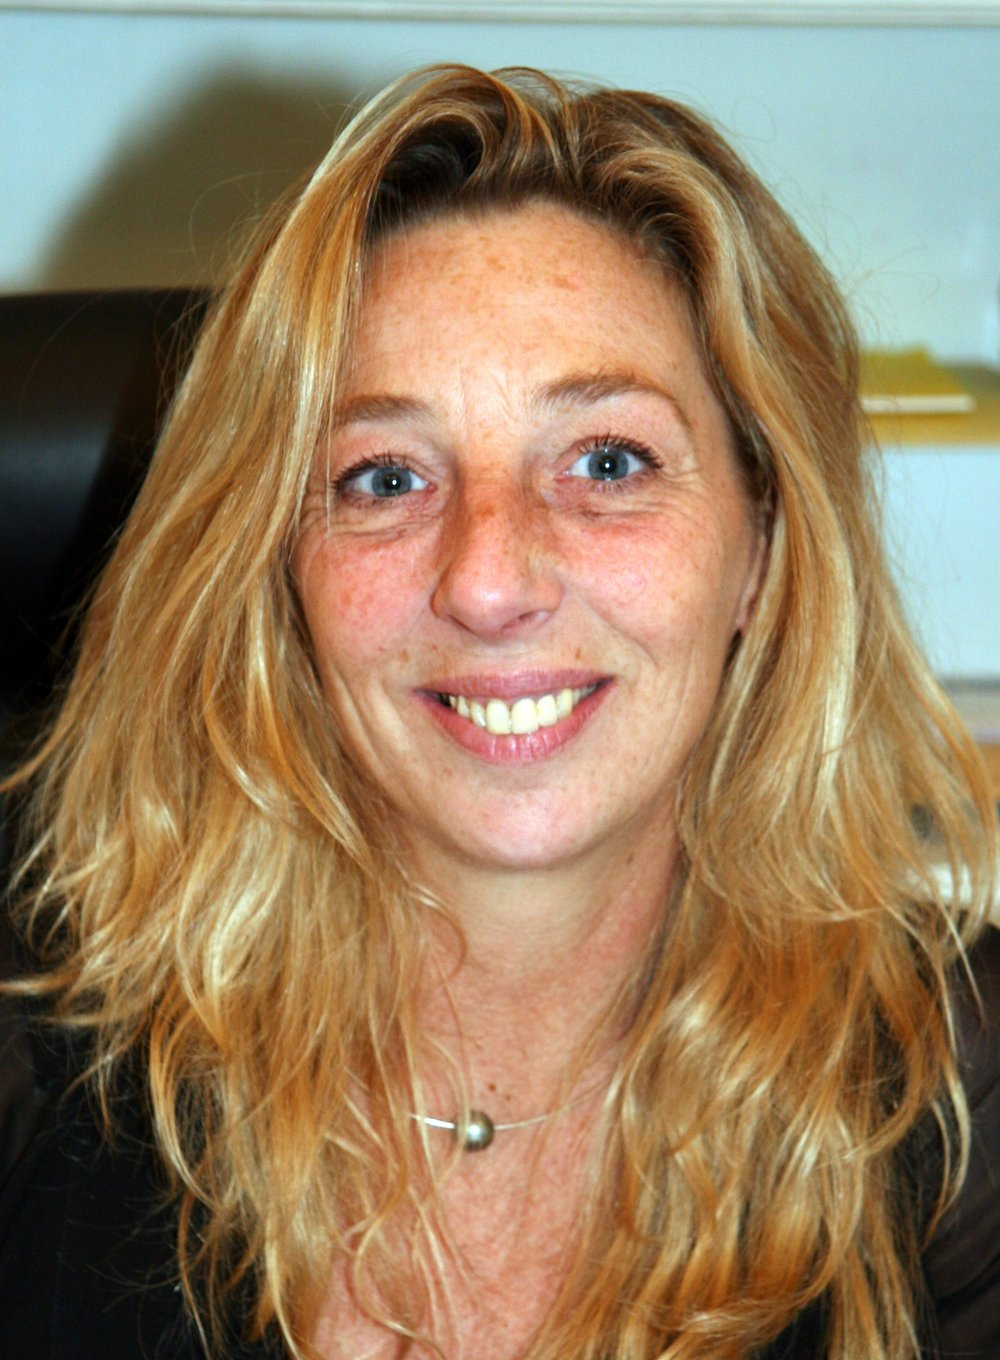 "<a href=""/nadia-marikdescoings""><span style=""color:#444;""><strong>Nadia Marik-Descoings</strong>First Counselor, Tribunal Administratif de Paris</span></a>"